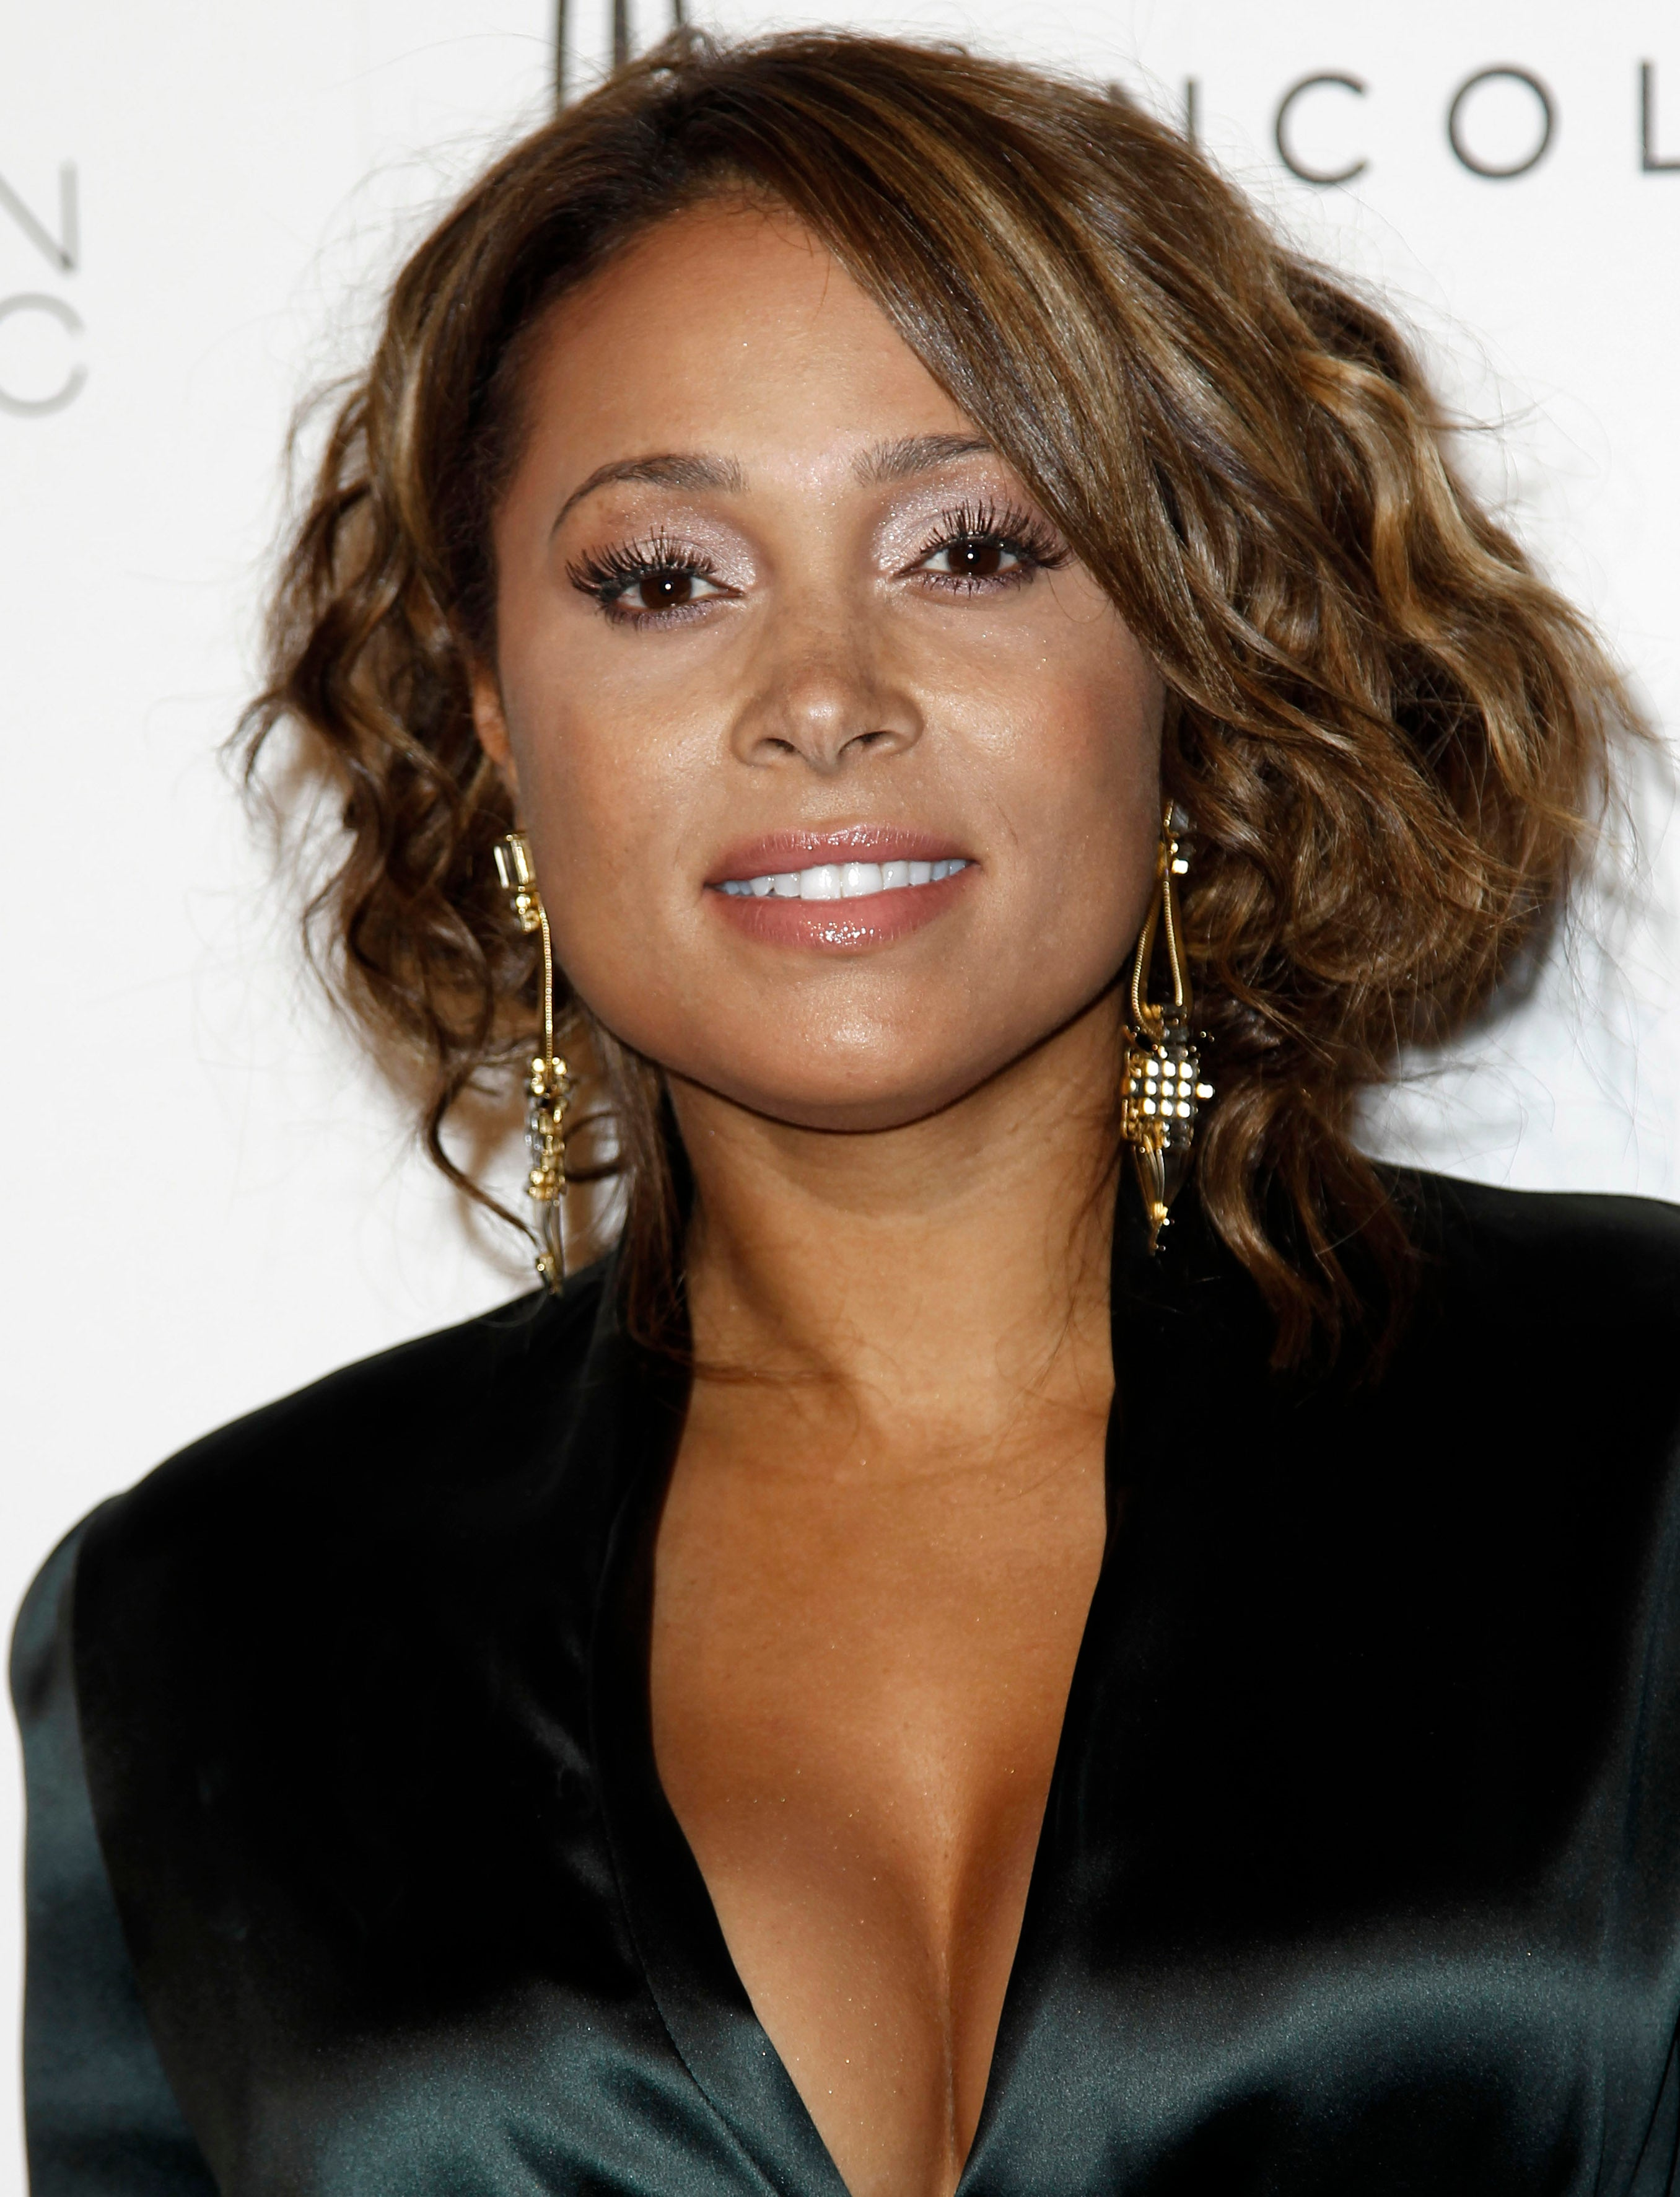 Tamia Calls 'Basketball Wives' Reality Show 'Misleading'